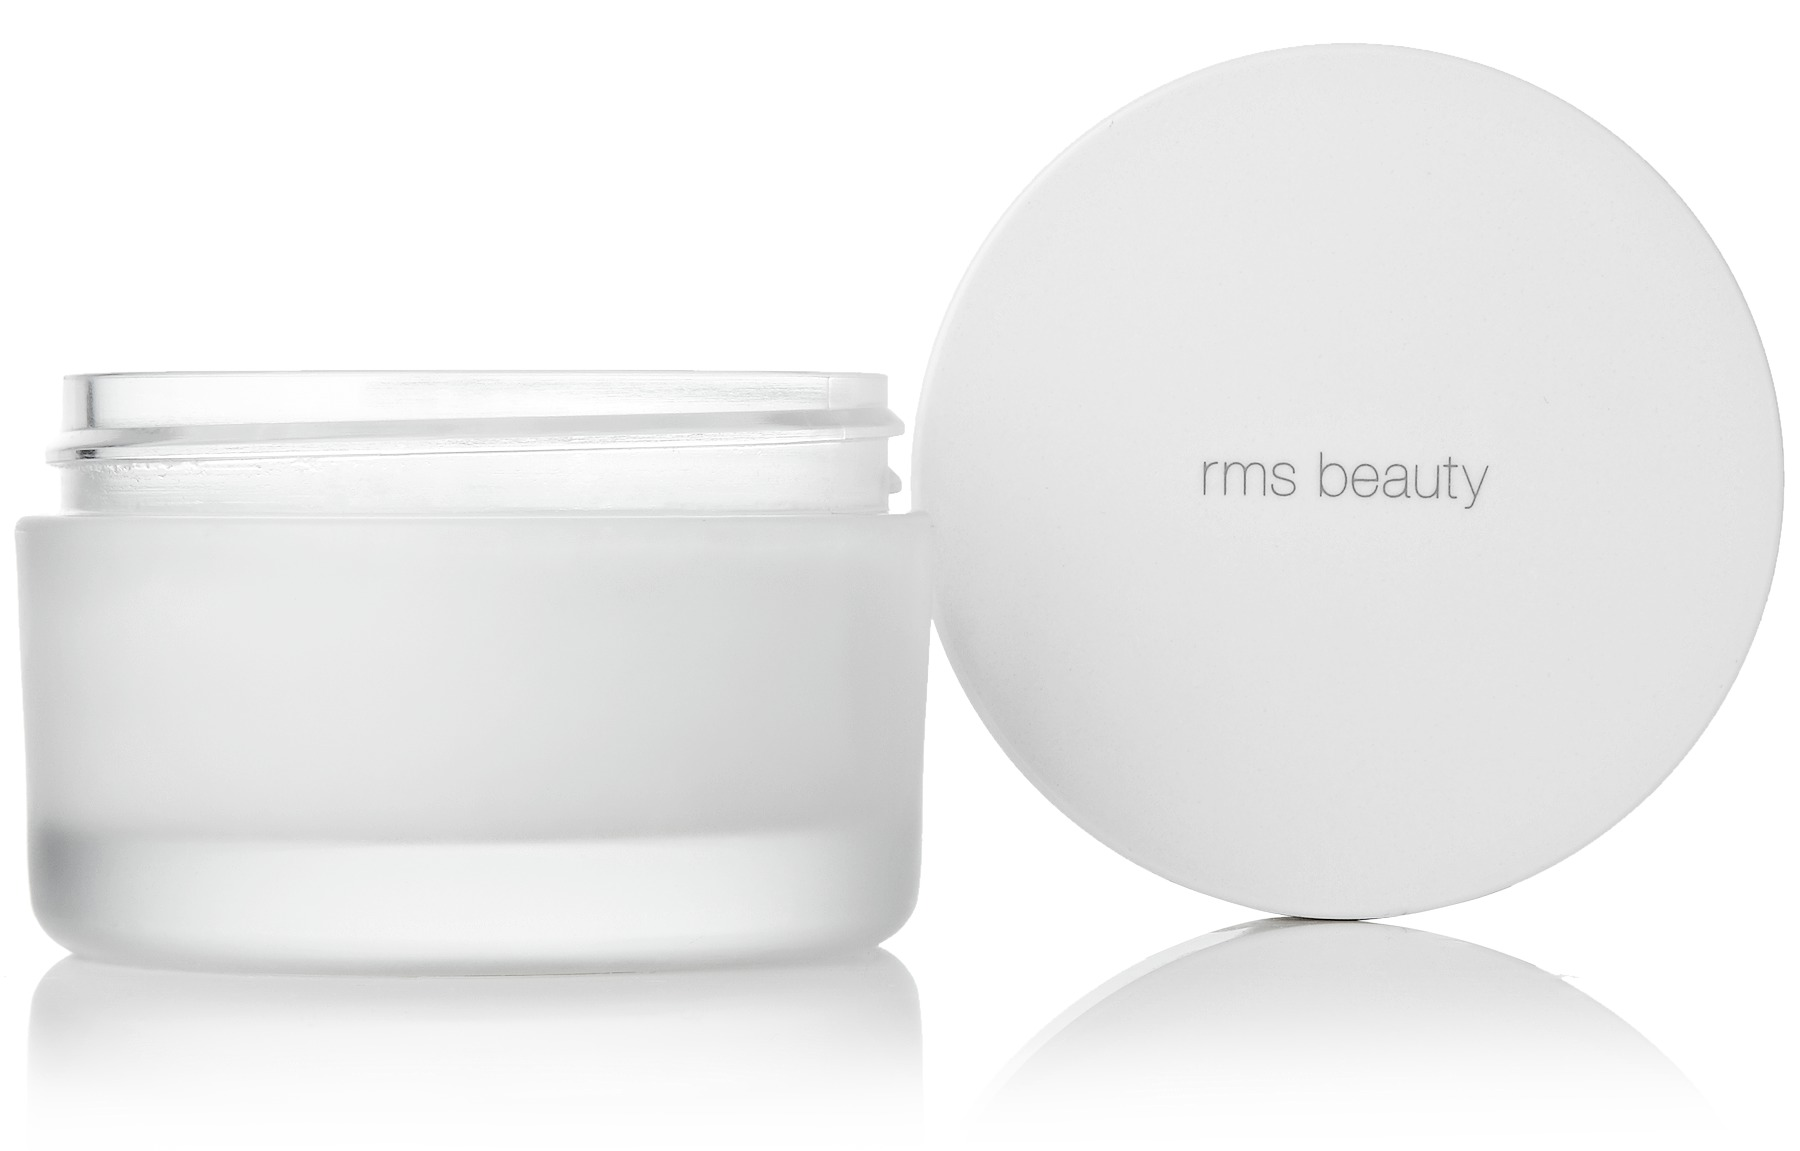 4. Use RMS Beauty Coconut Cream to remove stubborn makeup